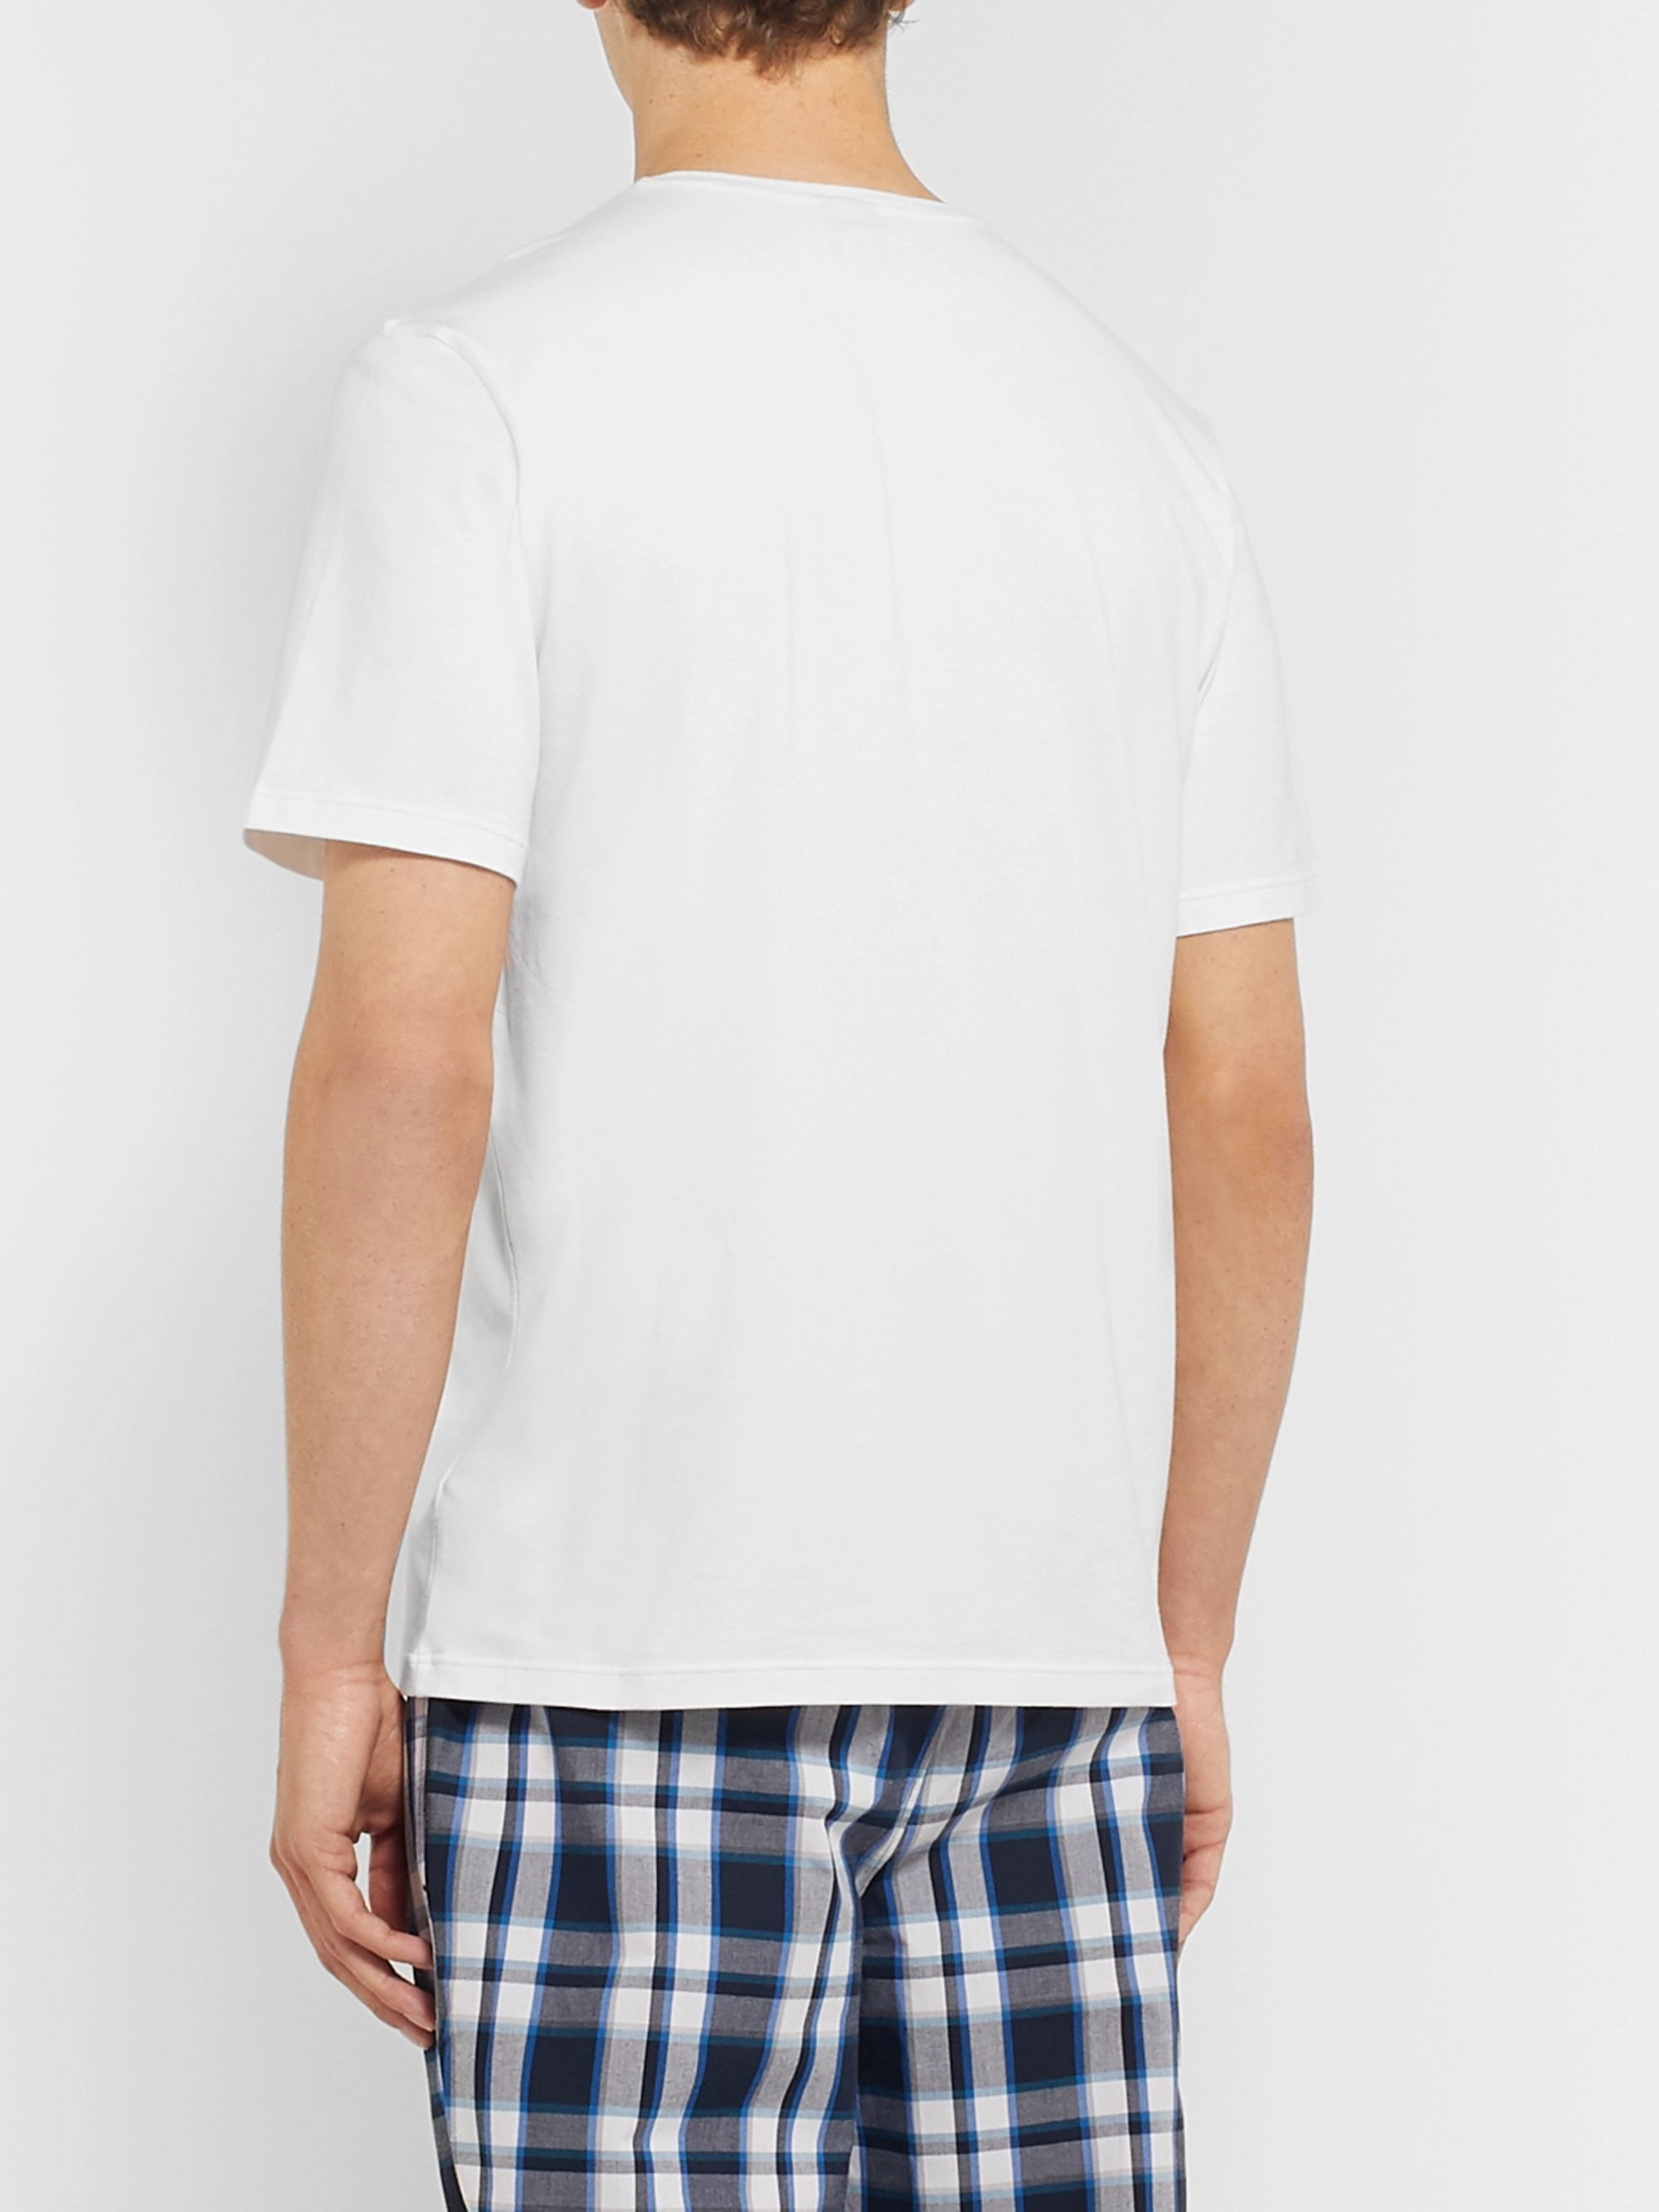 Hugo Boss Stretch-Cotton Jersey T-Shirt